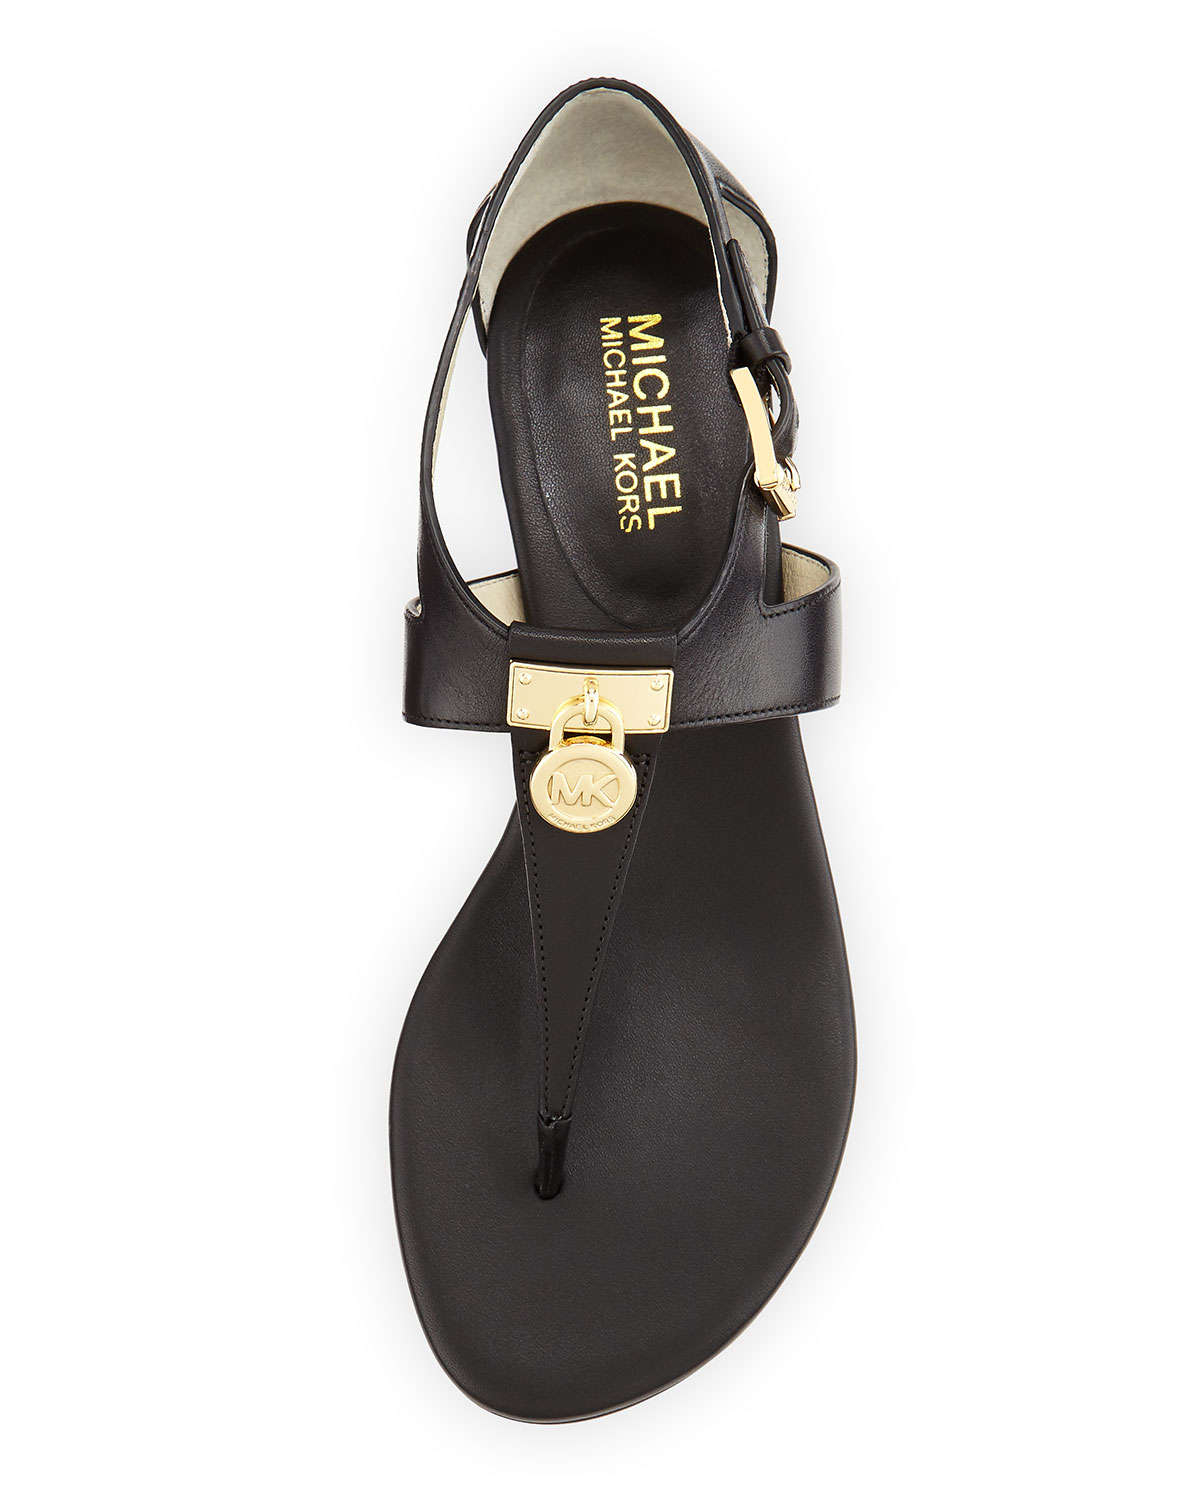 7ee771e1a312 Lyst - MICHAEL Michael Kors Hamilton Leather Thong Sandals in Black